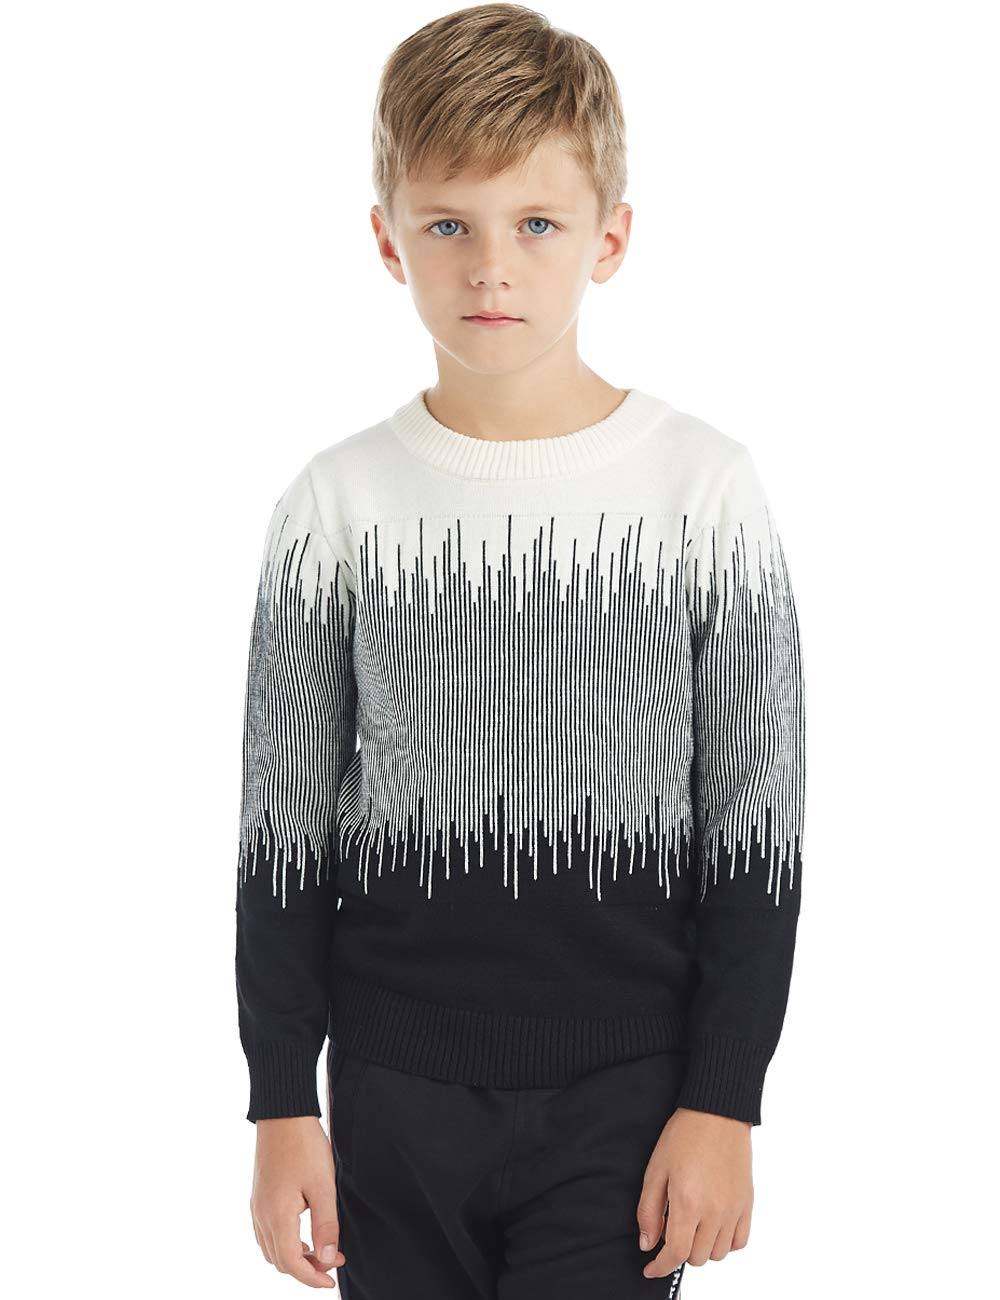 BYCR Boys' Elastic Pullover Sweater Crew Neck Cotton Sweatshirt Casual Style